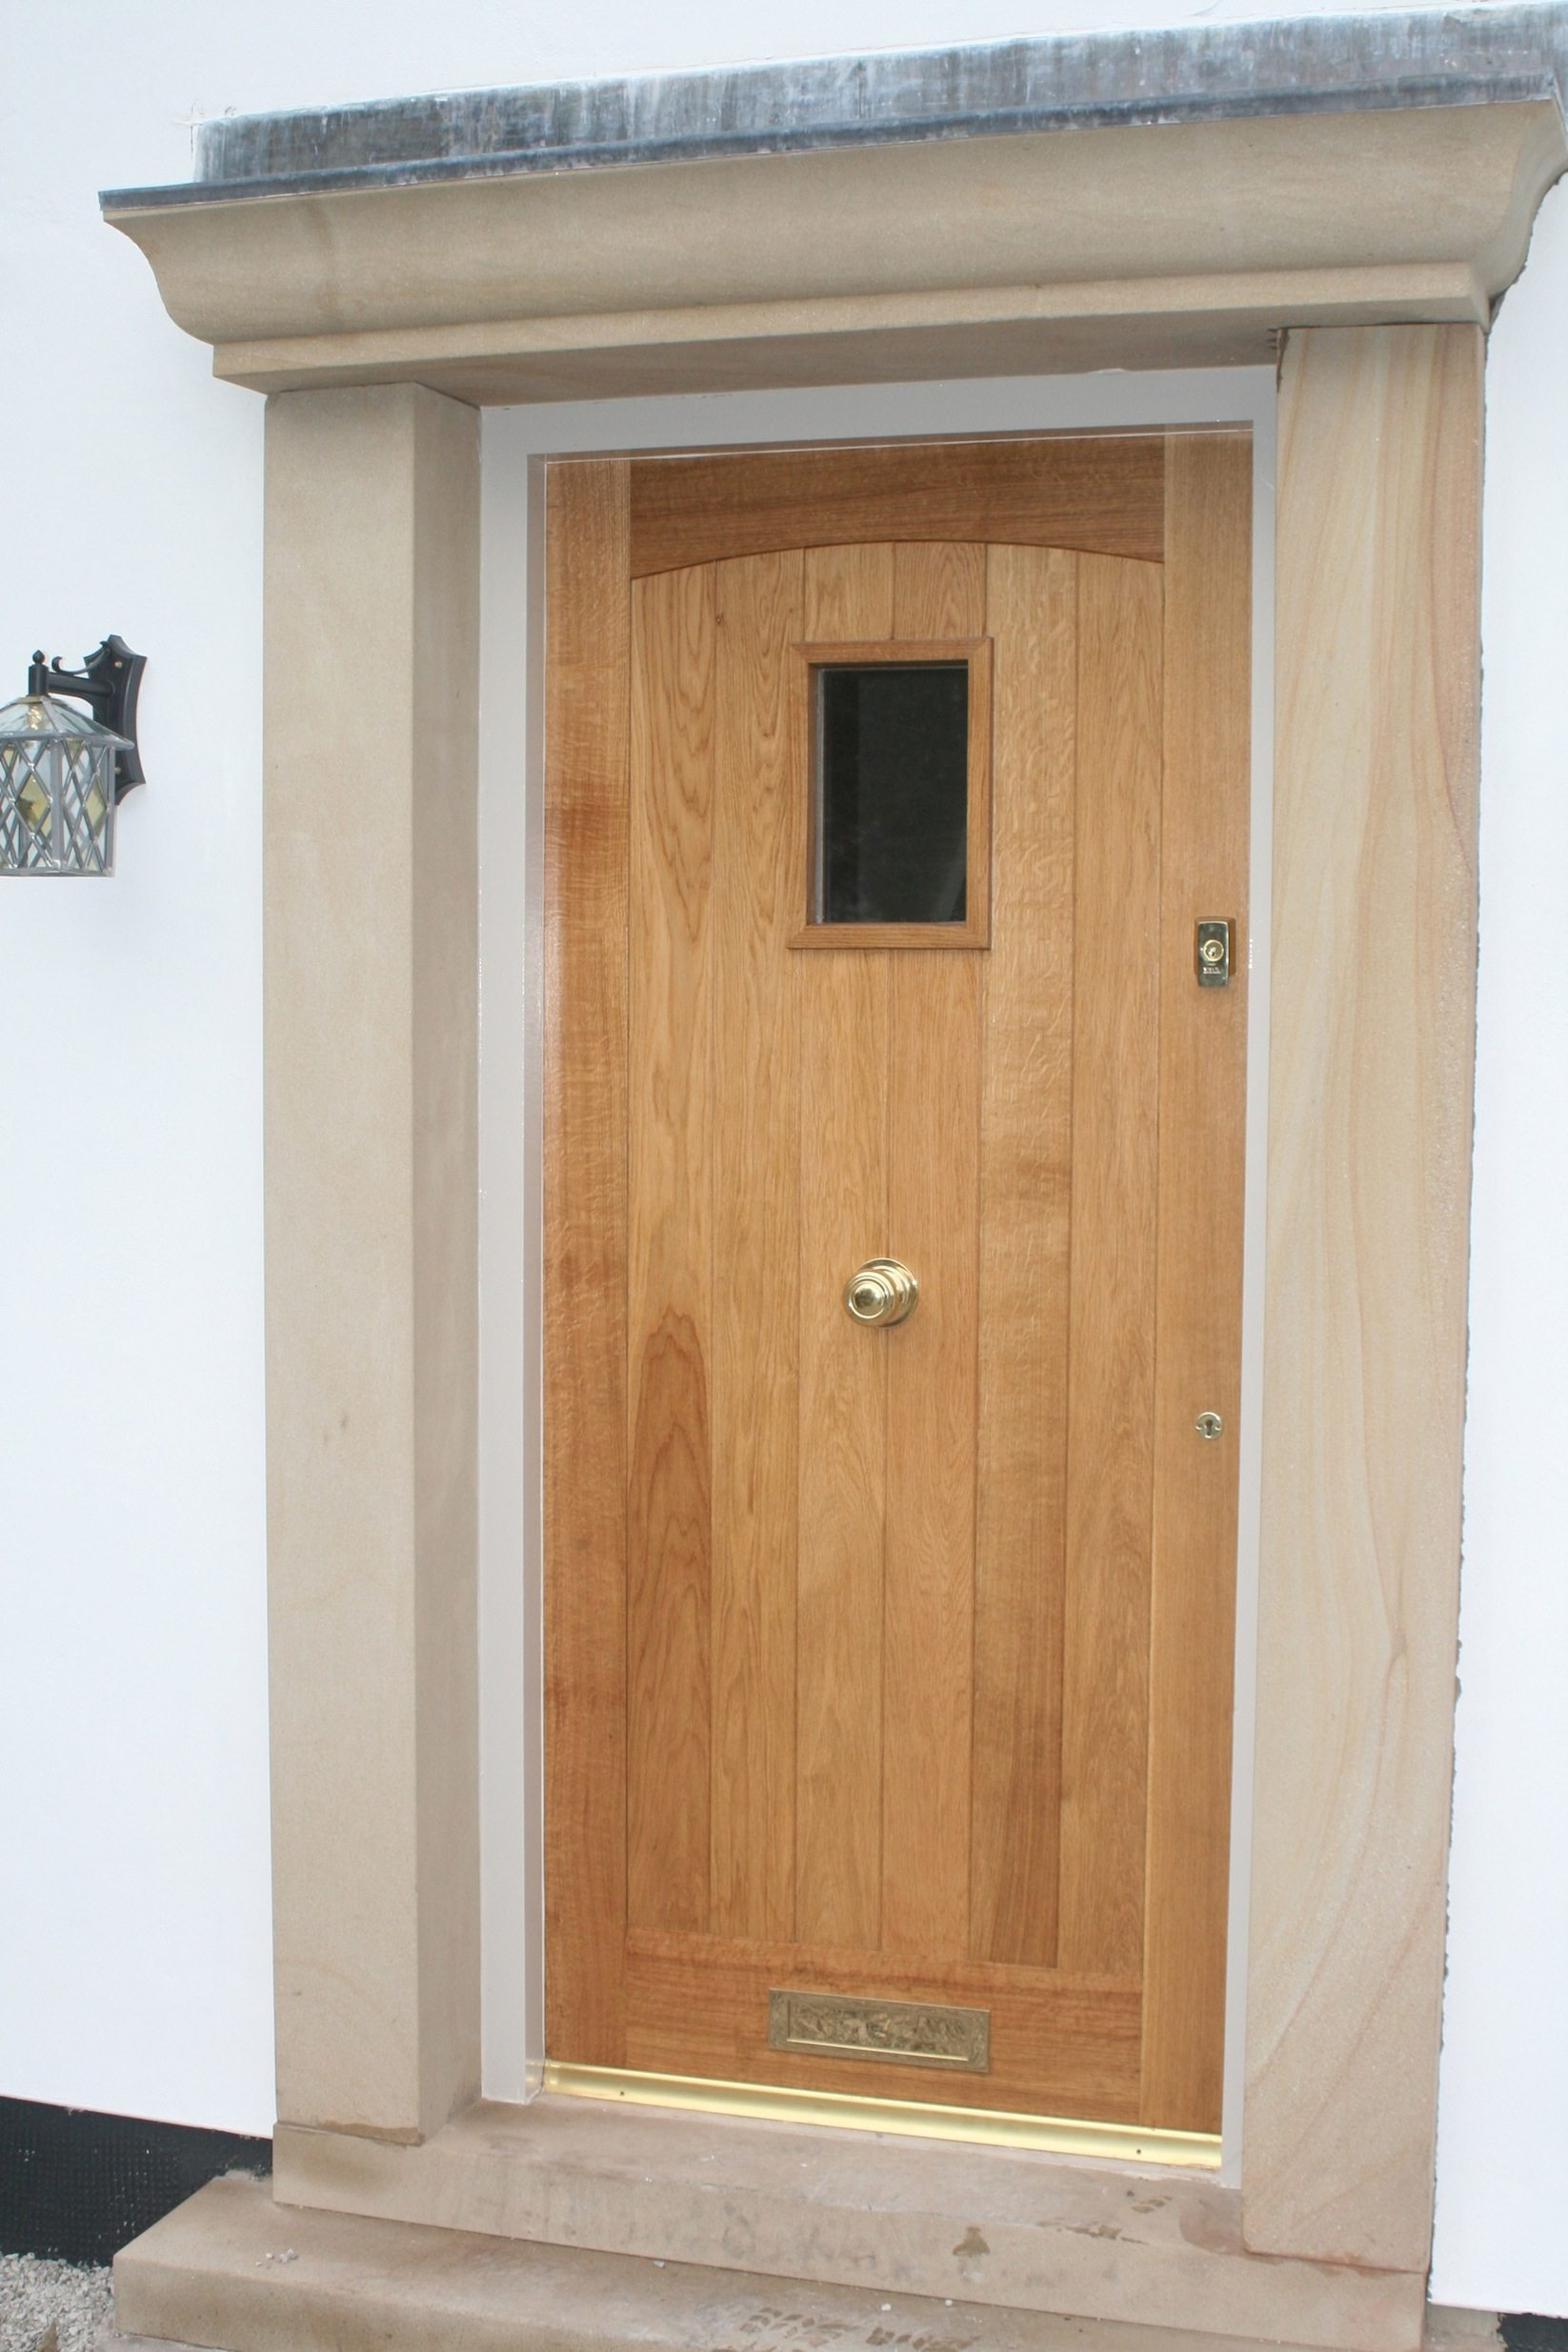 Doors and Window Bespoke joinery Restoration & Replacement